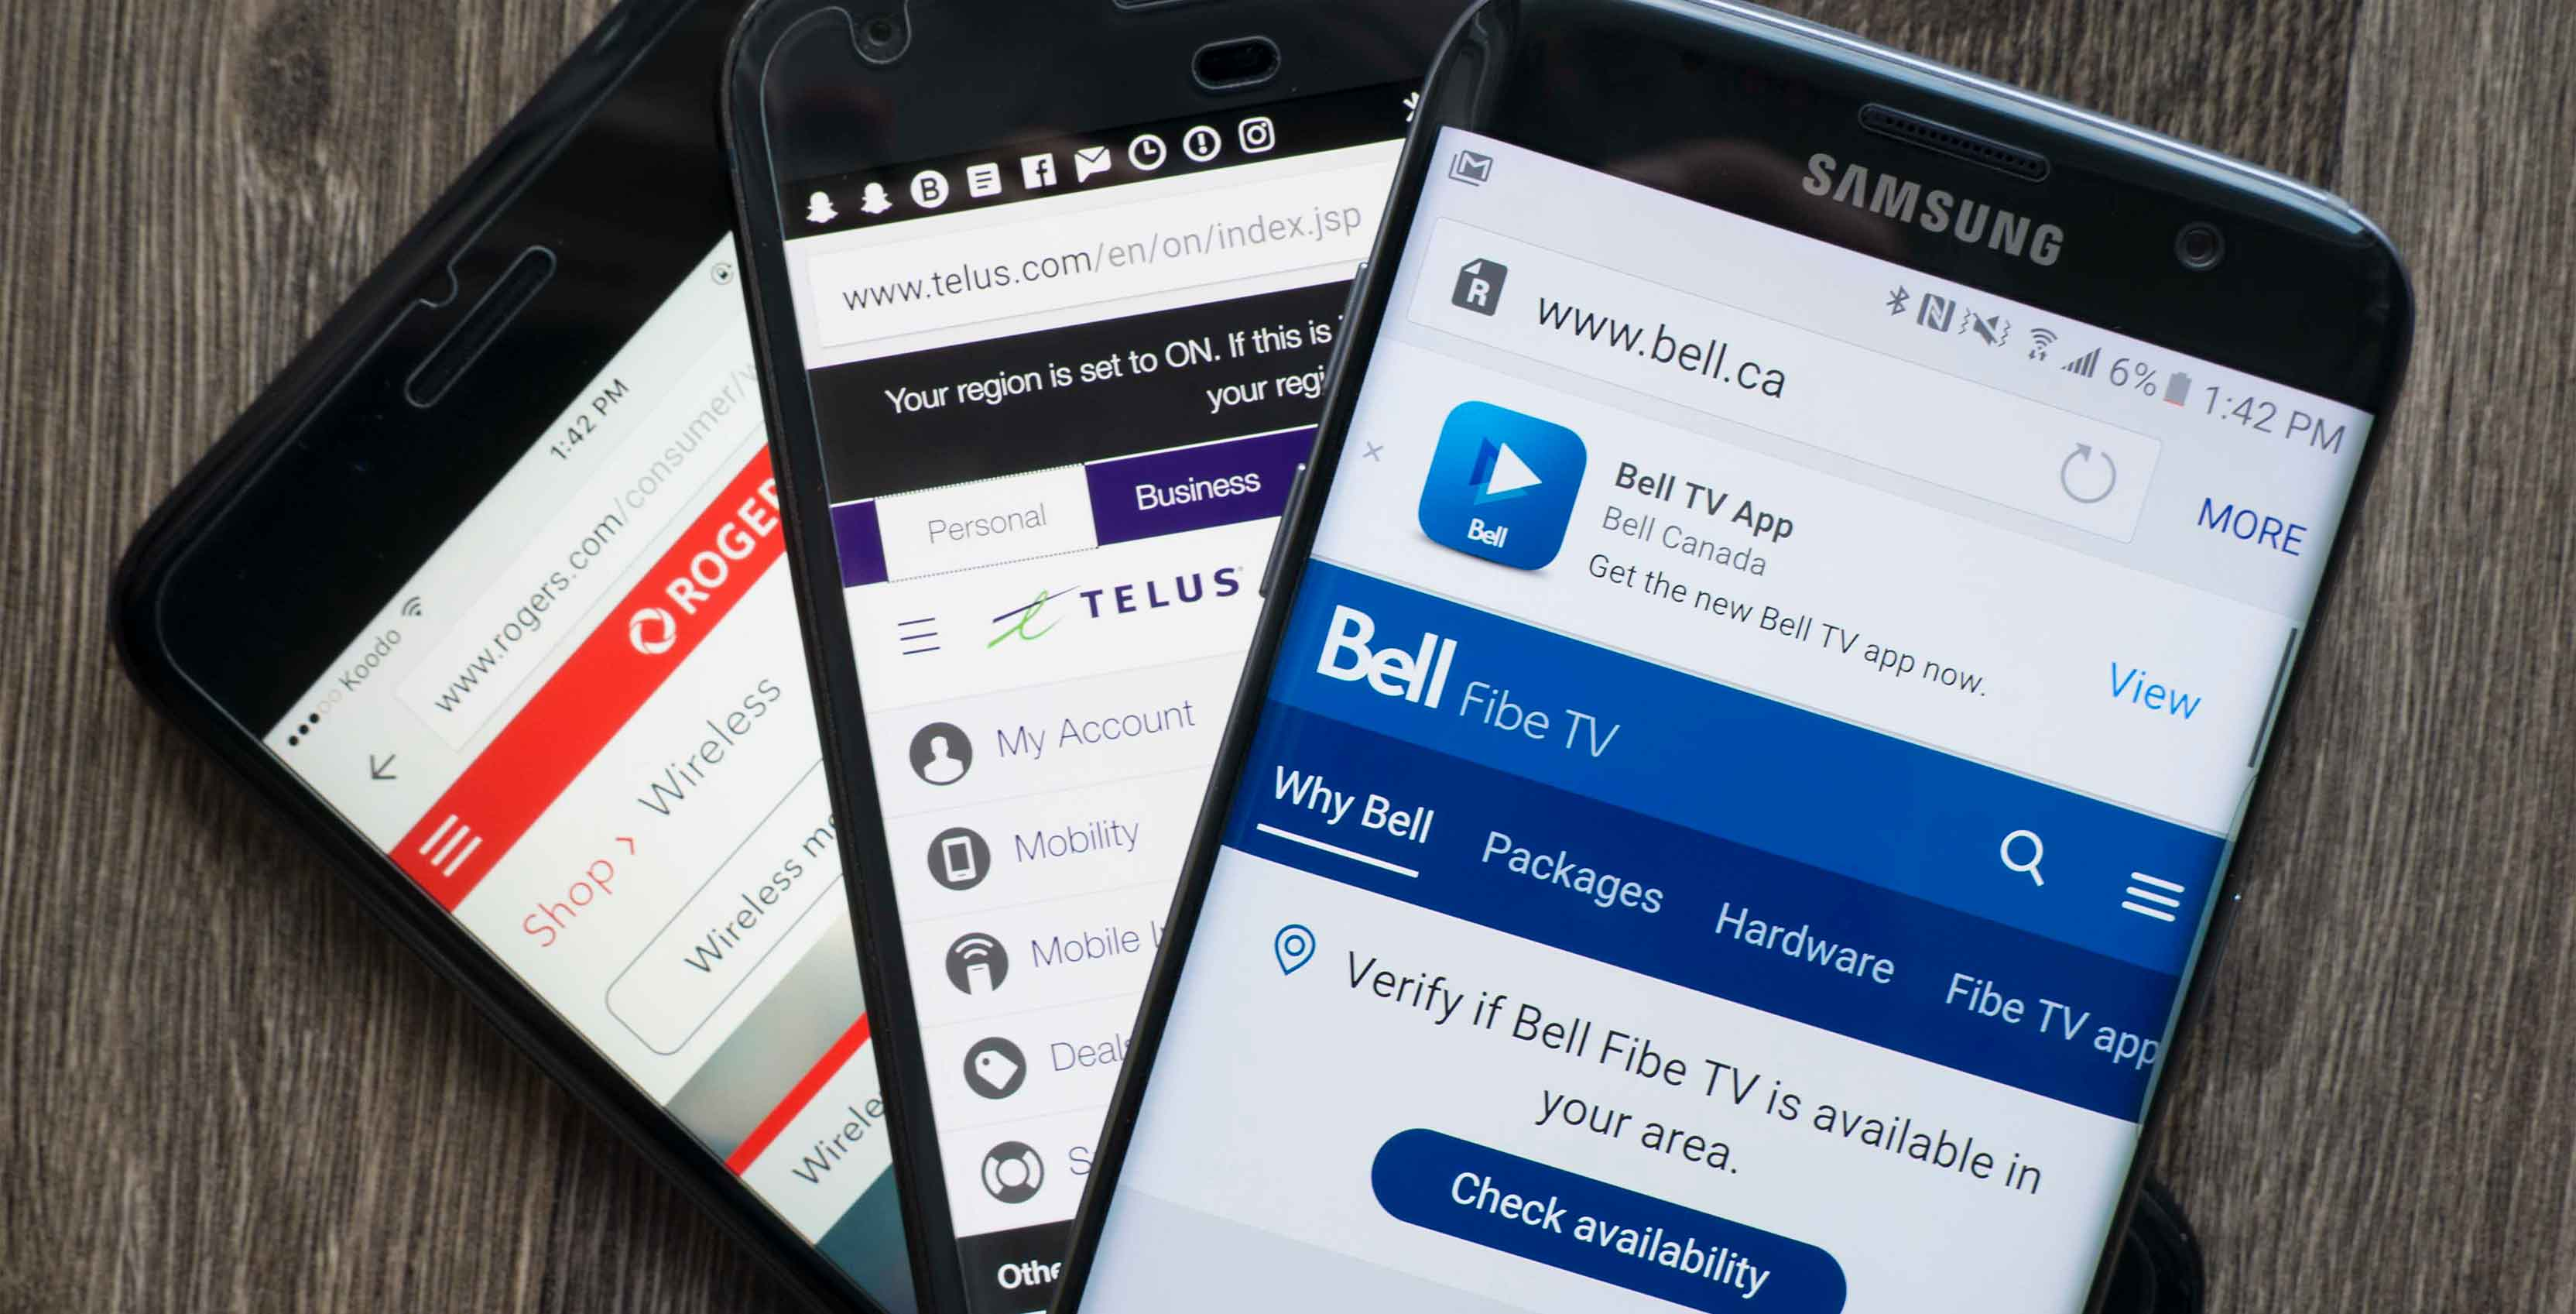 bell telus rogers websites on phones - unlocking revenue canada